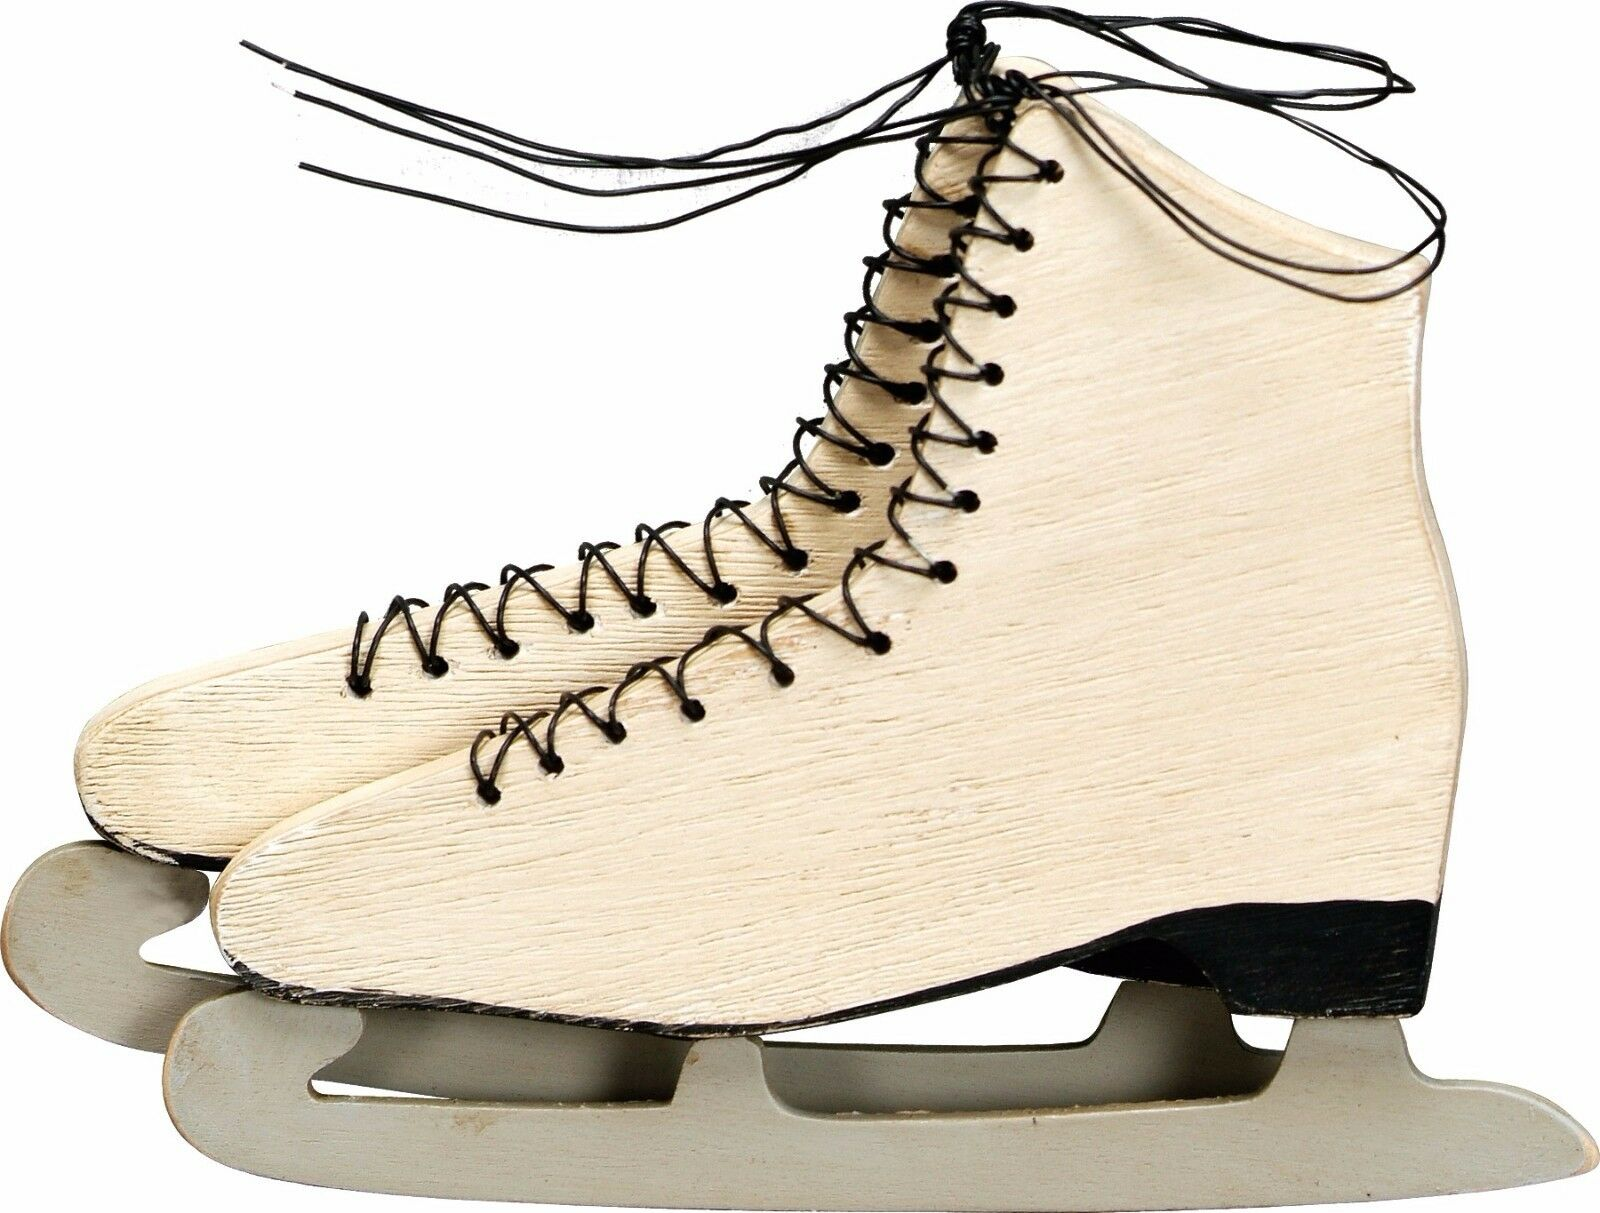 WOOD VINTAGE CHARM ICE SKATE~Christmas Ornament/Sign/Plaque ...